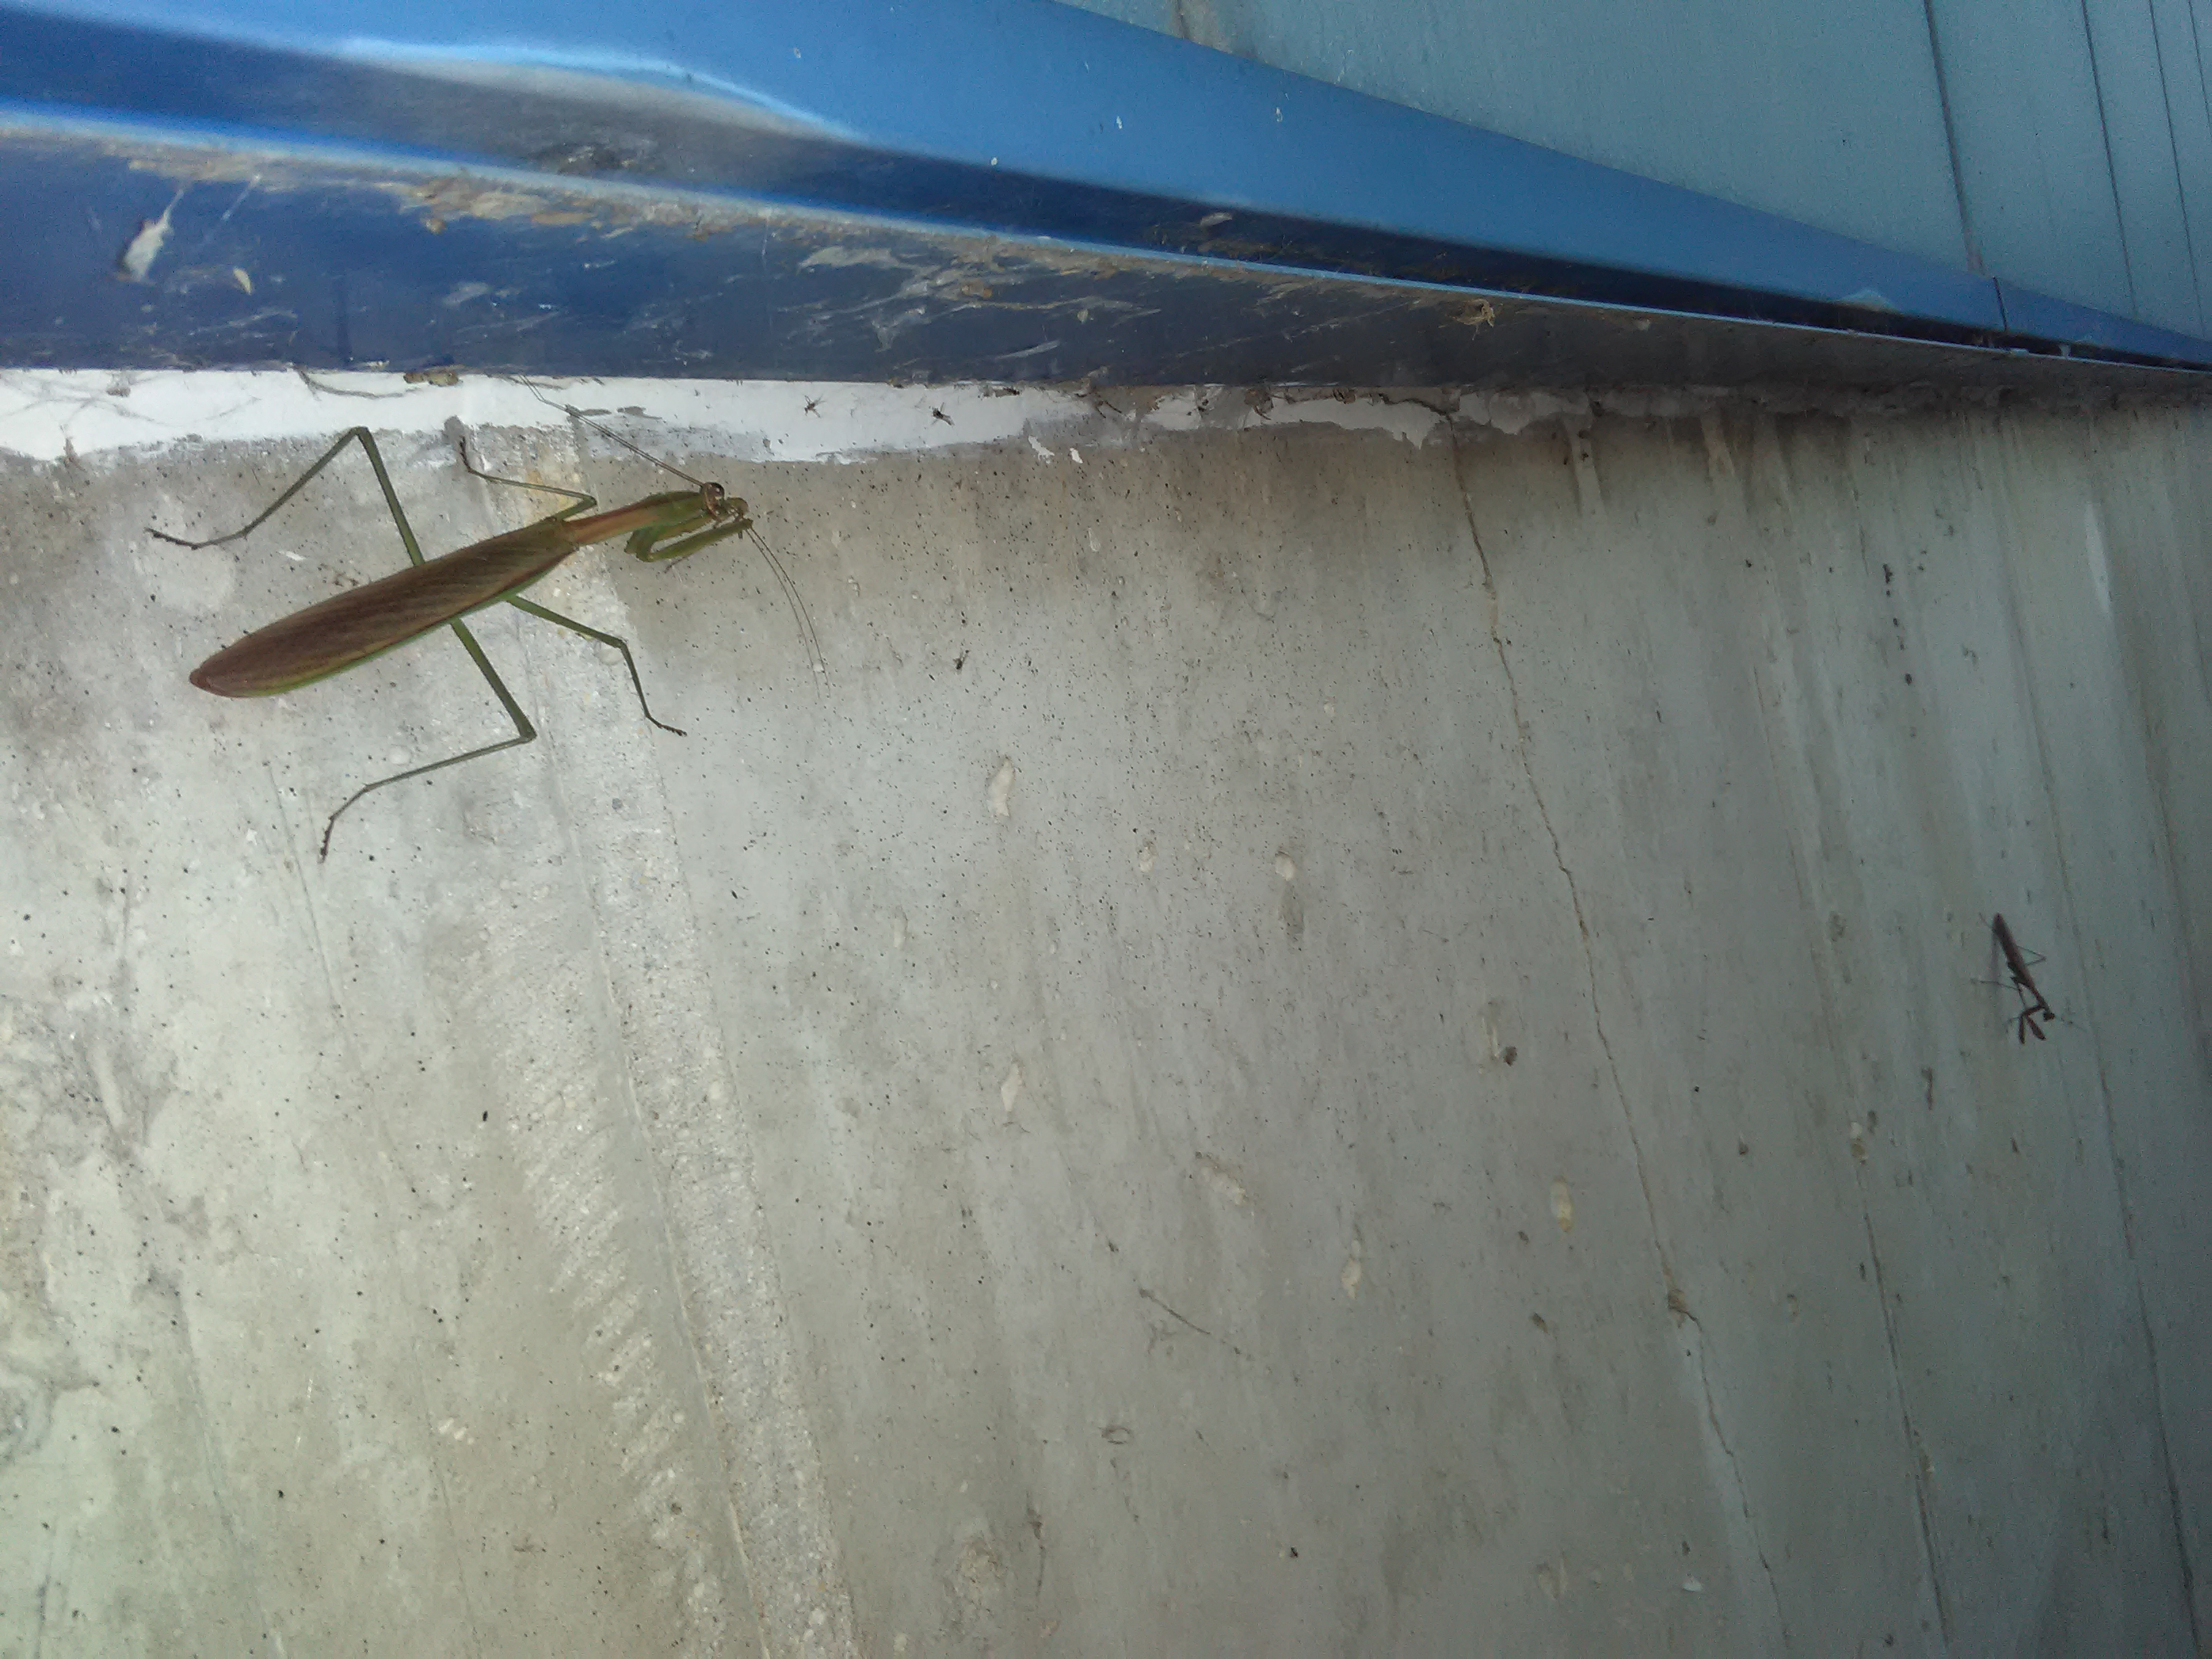 nature, wildlife, animal, bug, insect, praying mantis, praying mantis eats a spider